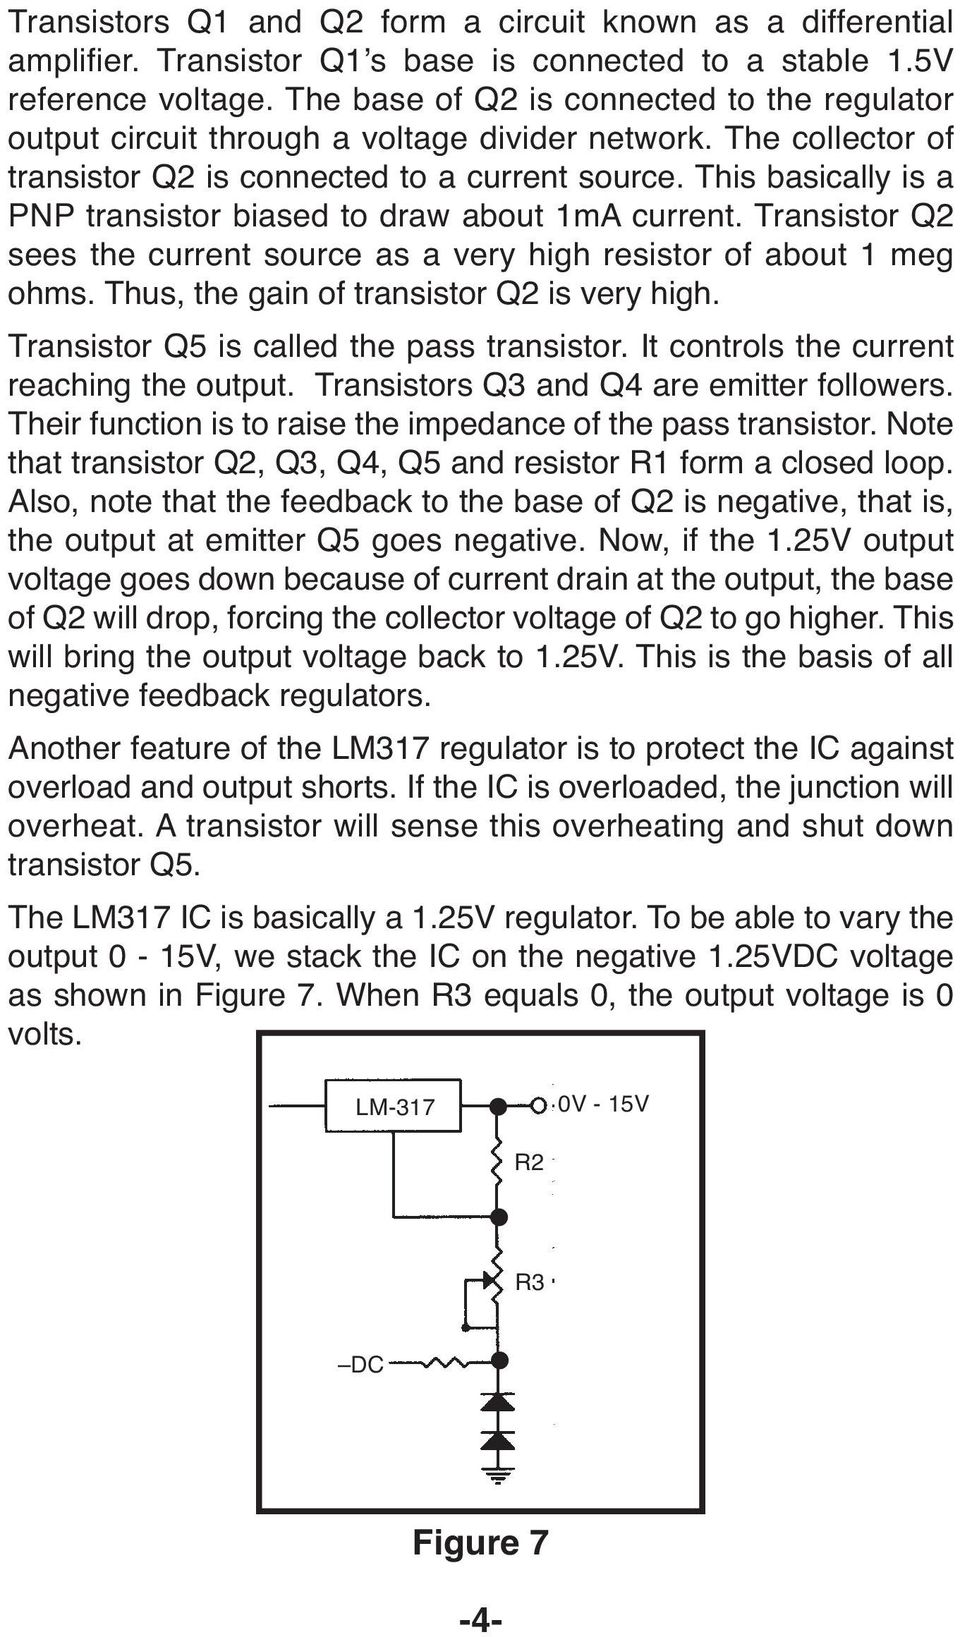 This basically is a PNP transistor biased to draw about 1mA current. Transistor Q2 sees the current source as a very high resistor of about 1 meg ohms. Thus, the gain of transistor Q2 is very high.